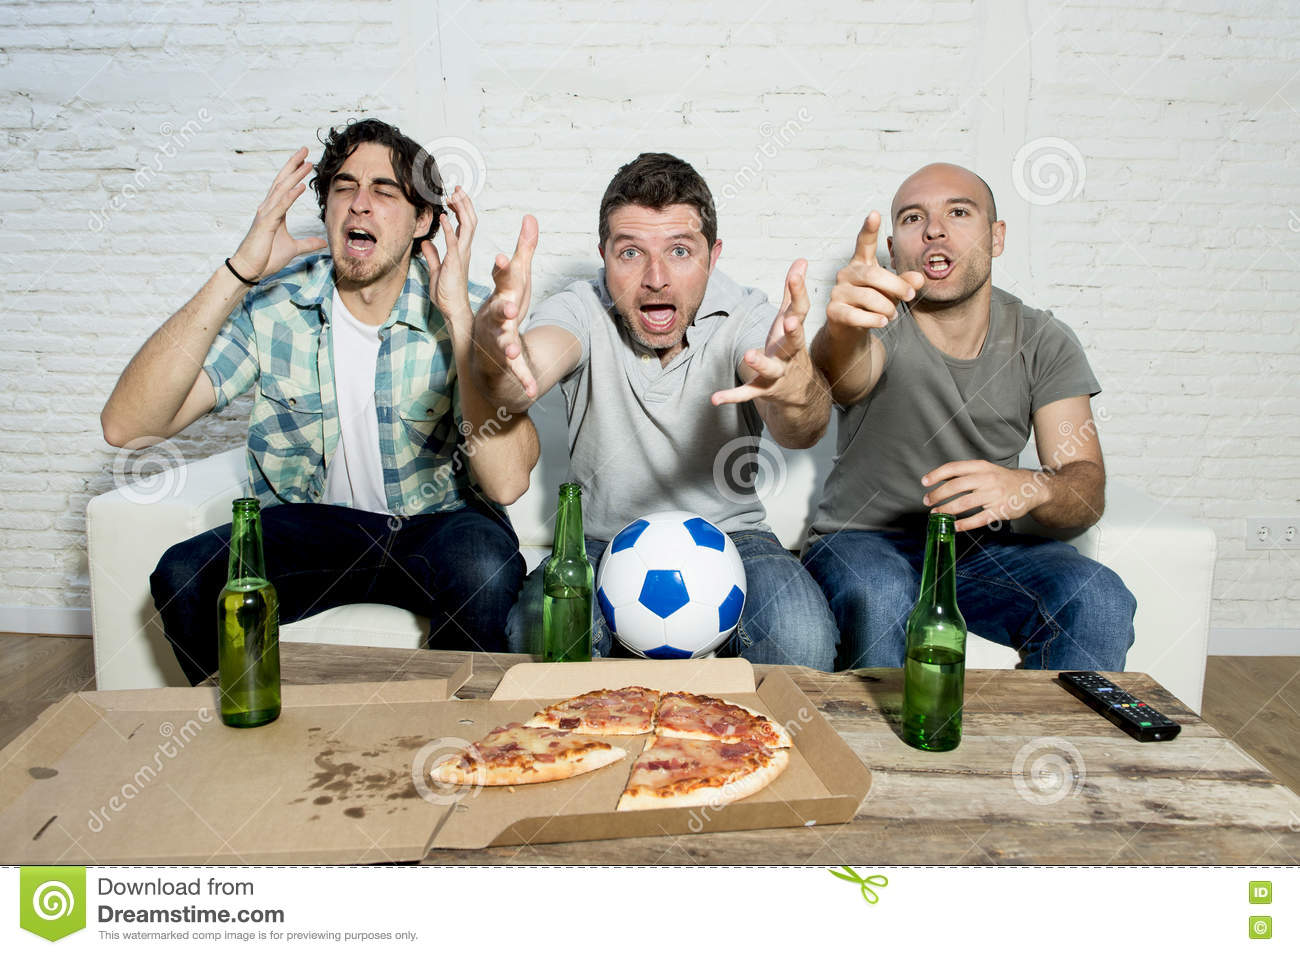 Fans taking pictures with cell phone behind barrier stock photo - Friends Fanatic Football Fans Watching Tv Match With Beer Bottles And Pizza Suffering Stress Royalty Free